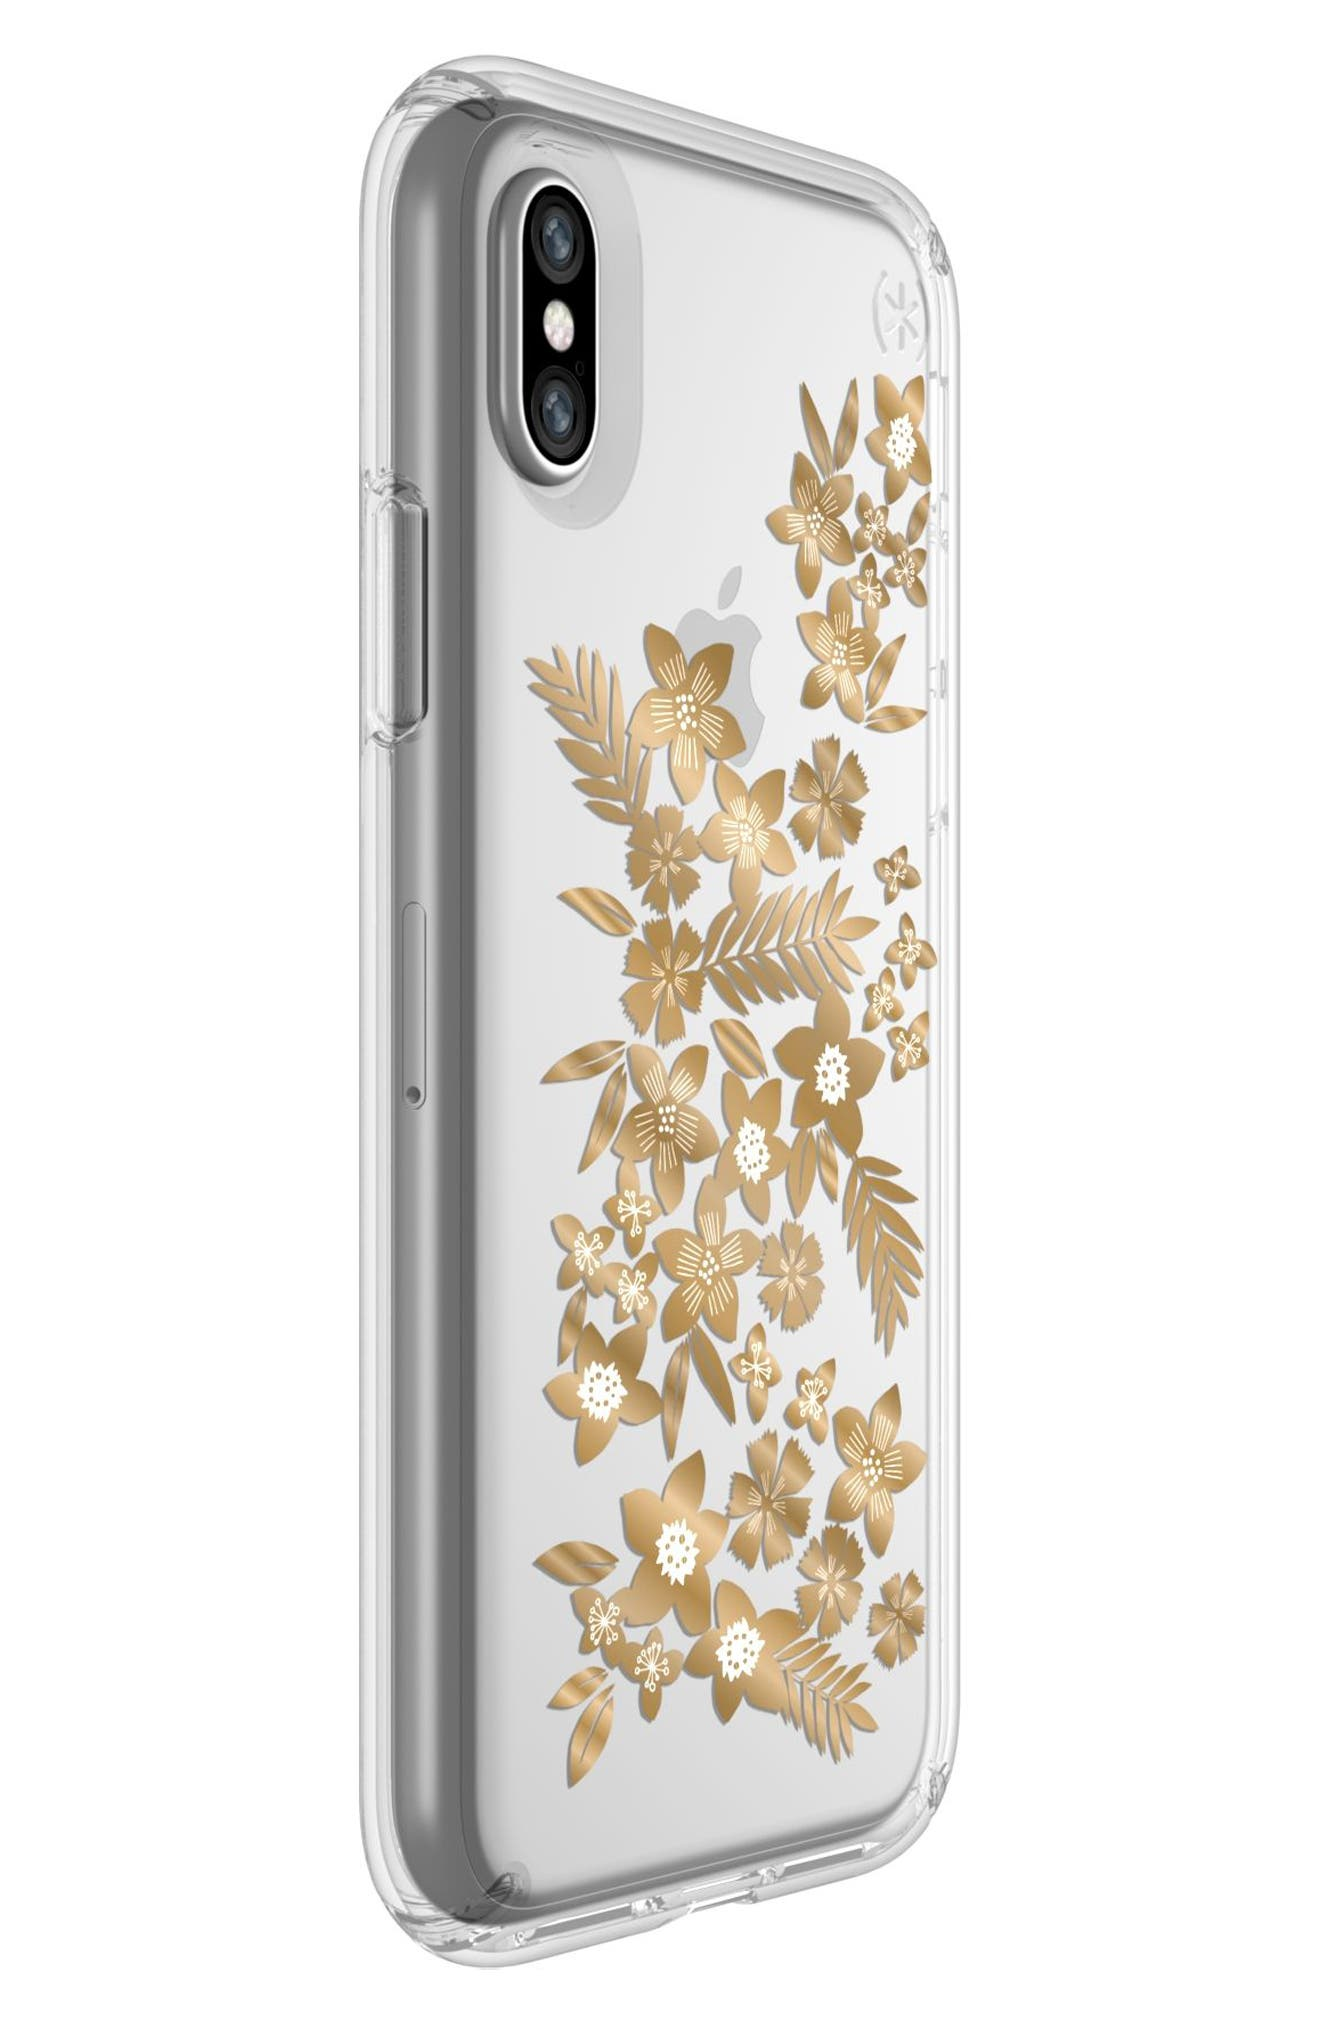 Shimmer Metallic Floral Transparent iPhone X Case,                             Alternate thumbnail 2, color,                             Shimmer Floral Metallic/ Clear